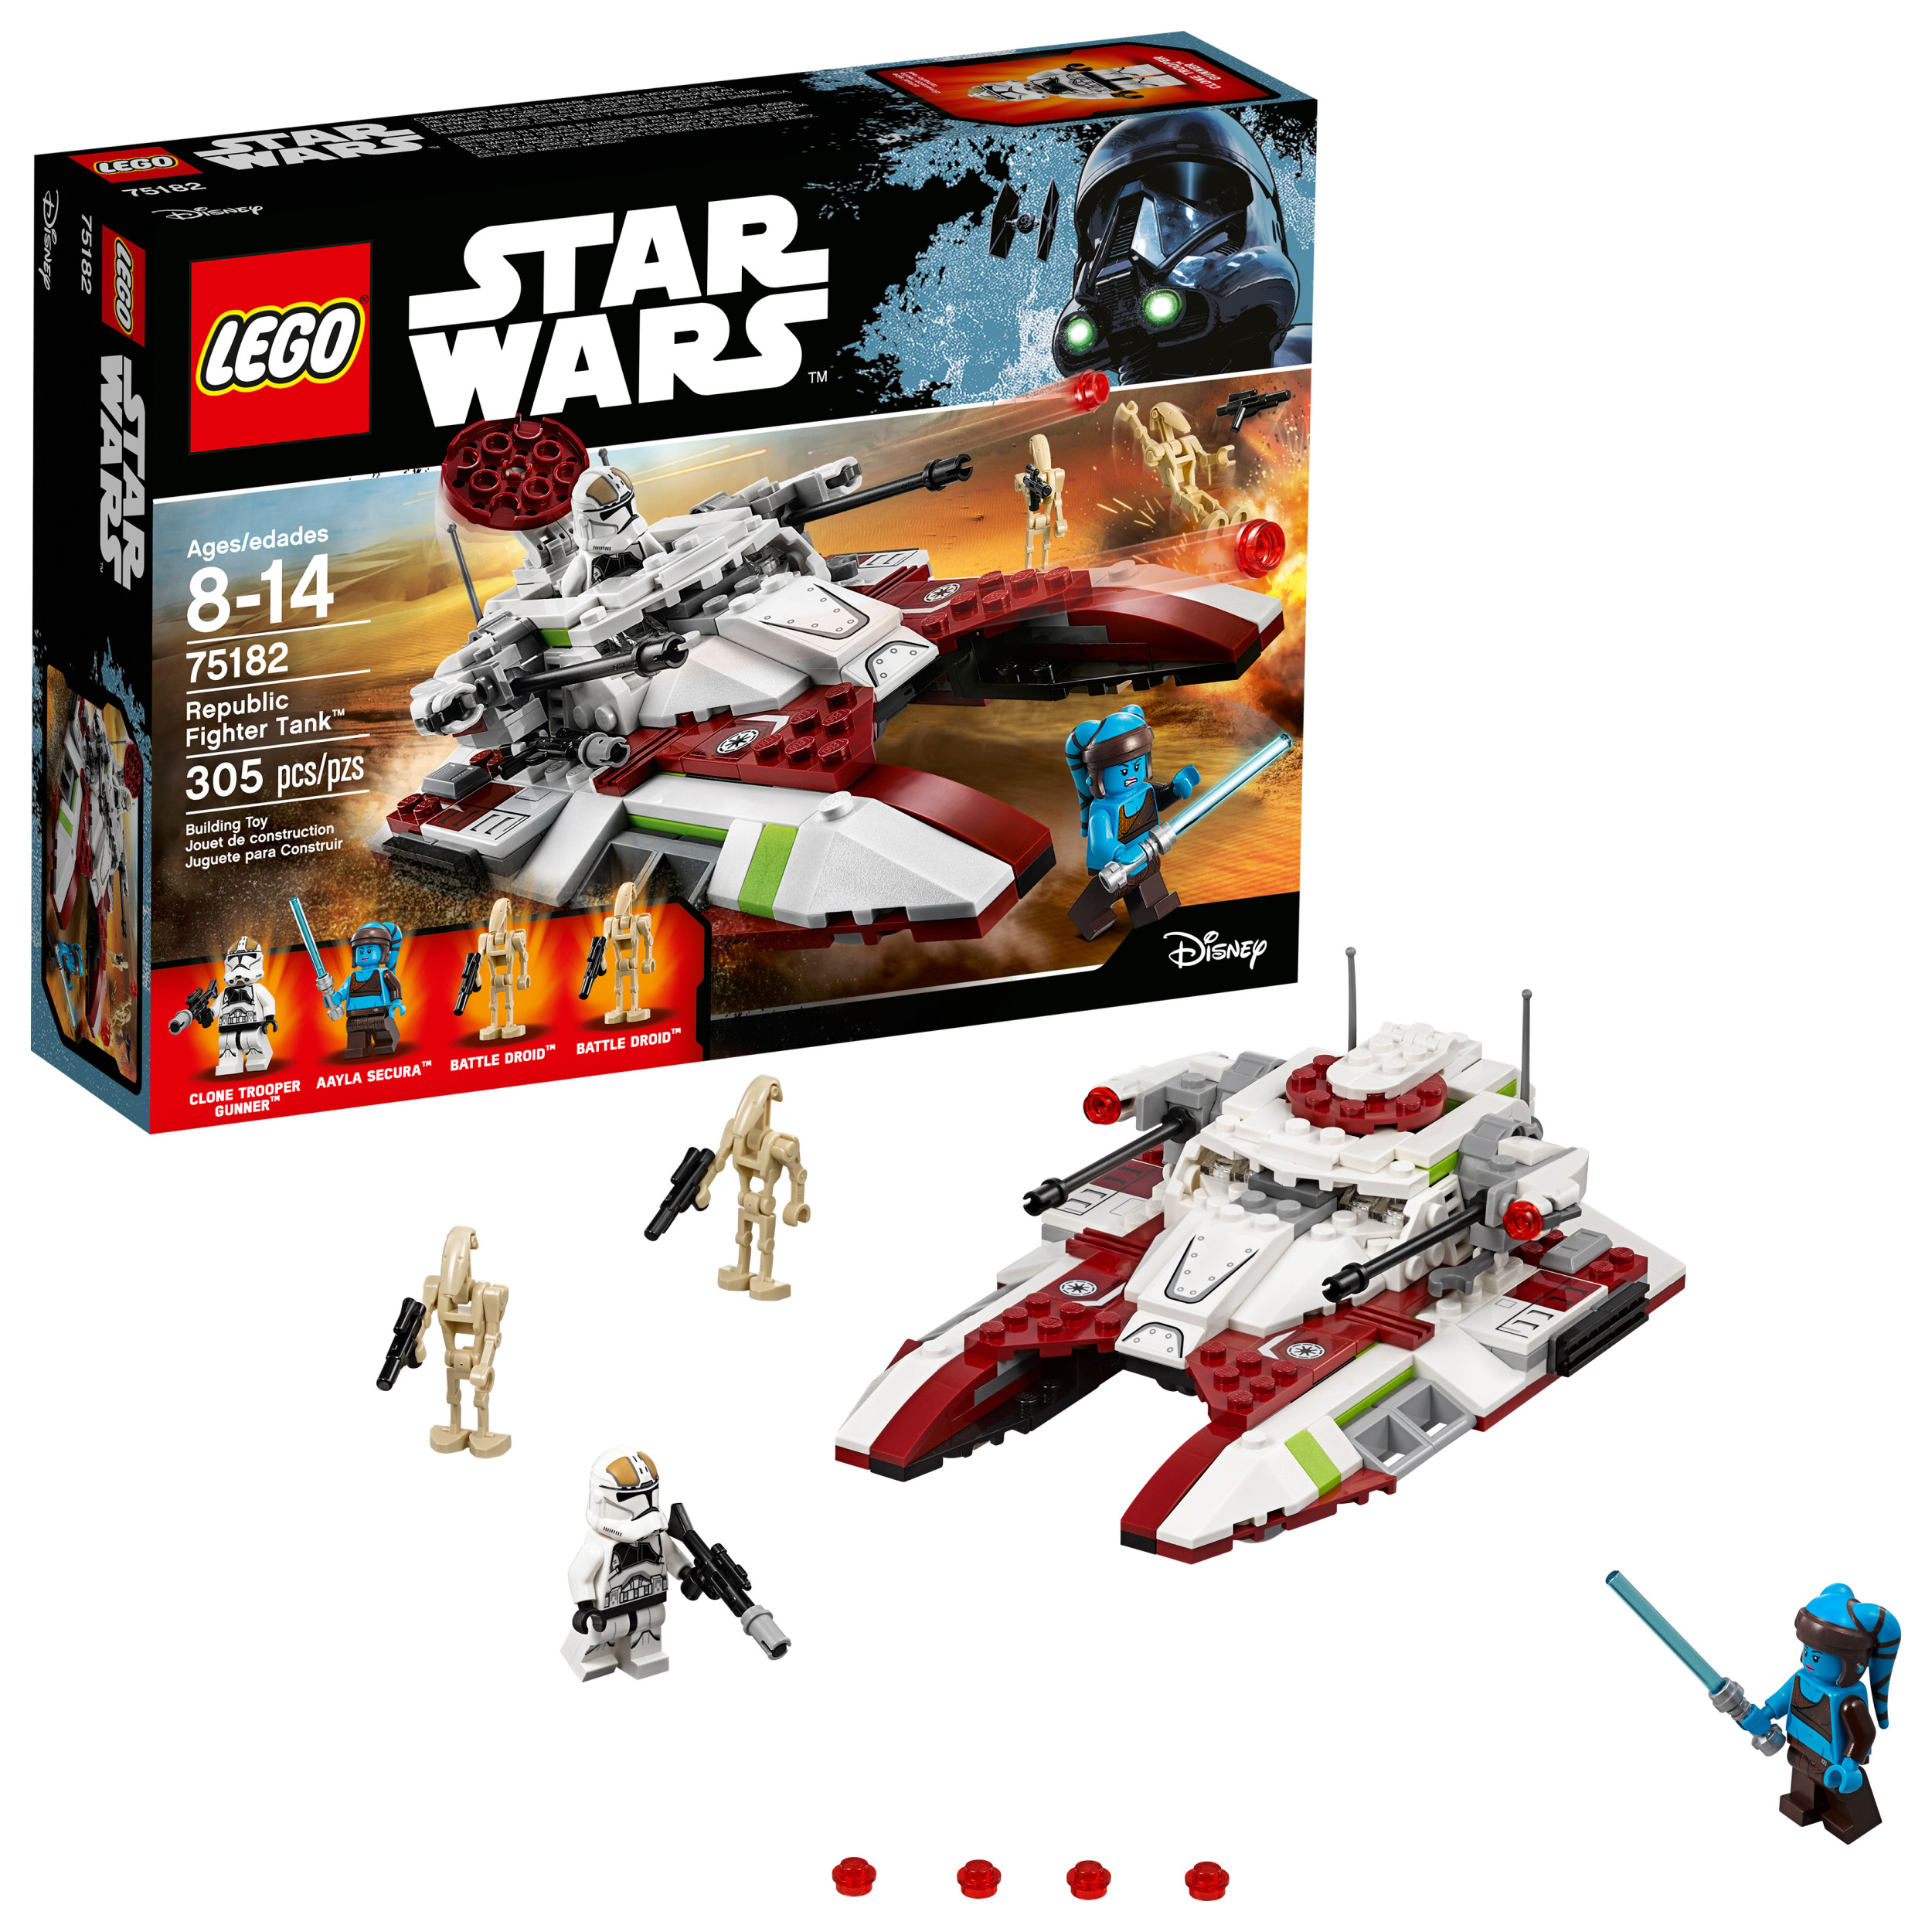 LEGO Star Wars TM Republic Fighter Tank 75182